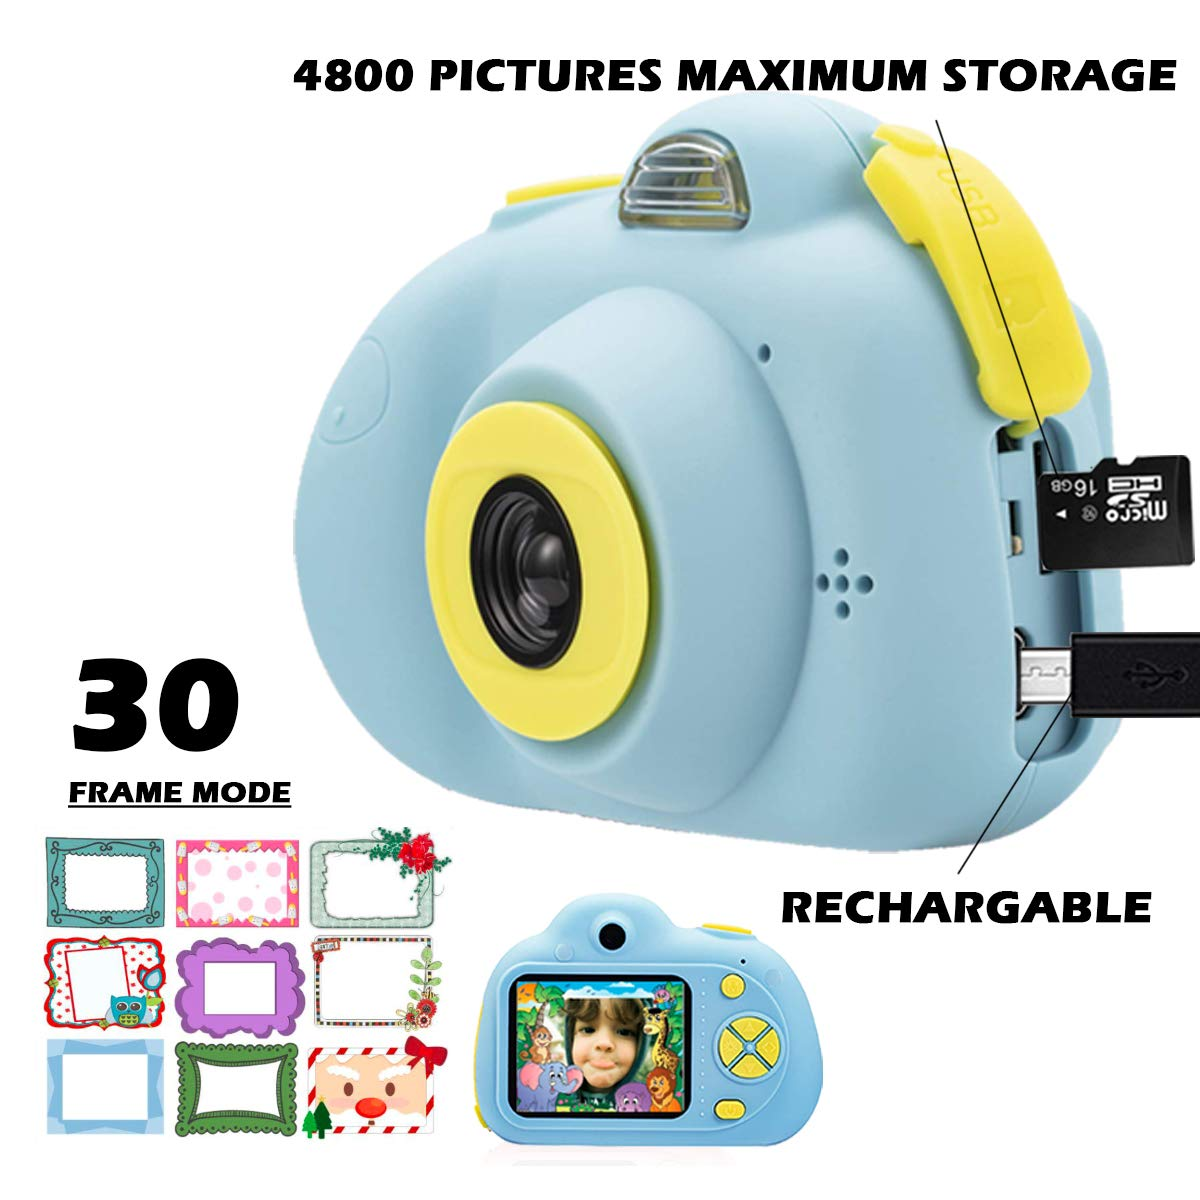 KIDOVE Kids Toys Fun Camera, Waterproof & Shockproof Child Selfie digital game Camcorder, 8MP 1080P dual camera Video Recorder, Creative Birthday Gifts for girls and boys, 16GB TF Card Included (Blue) by KIDOVE (Image #1)